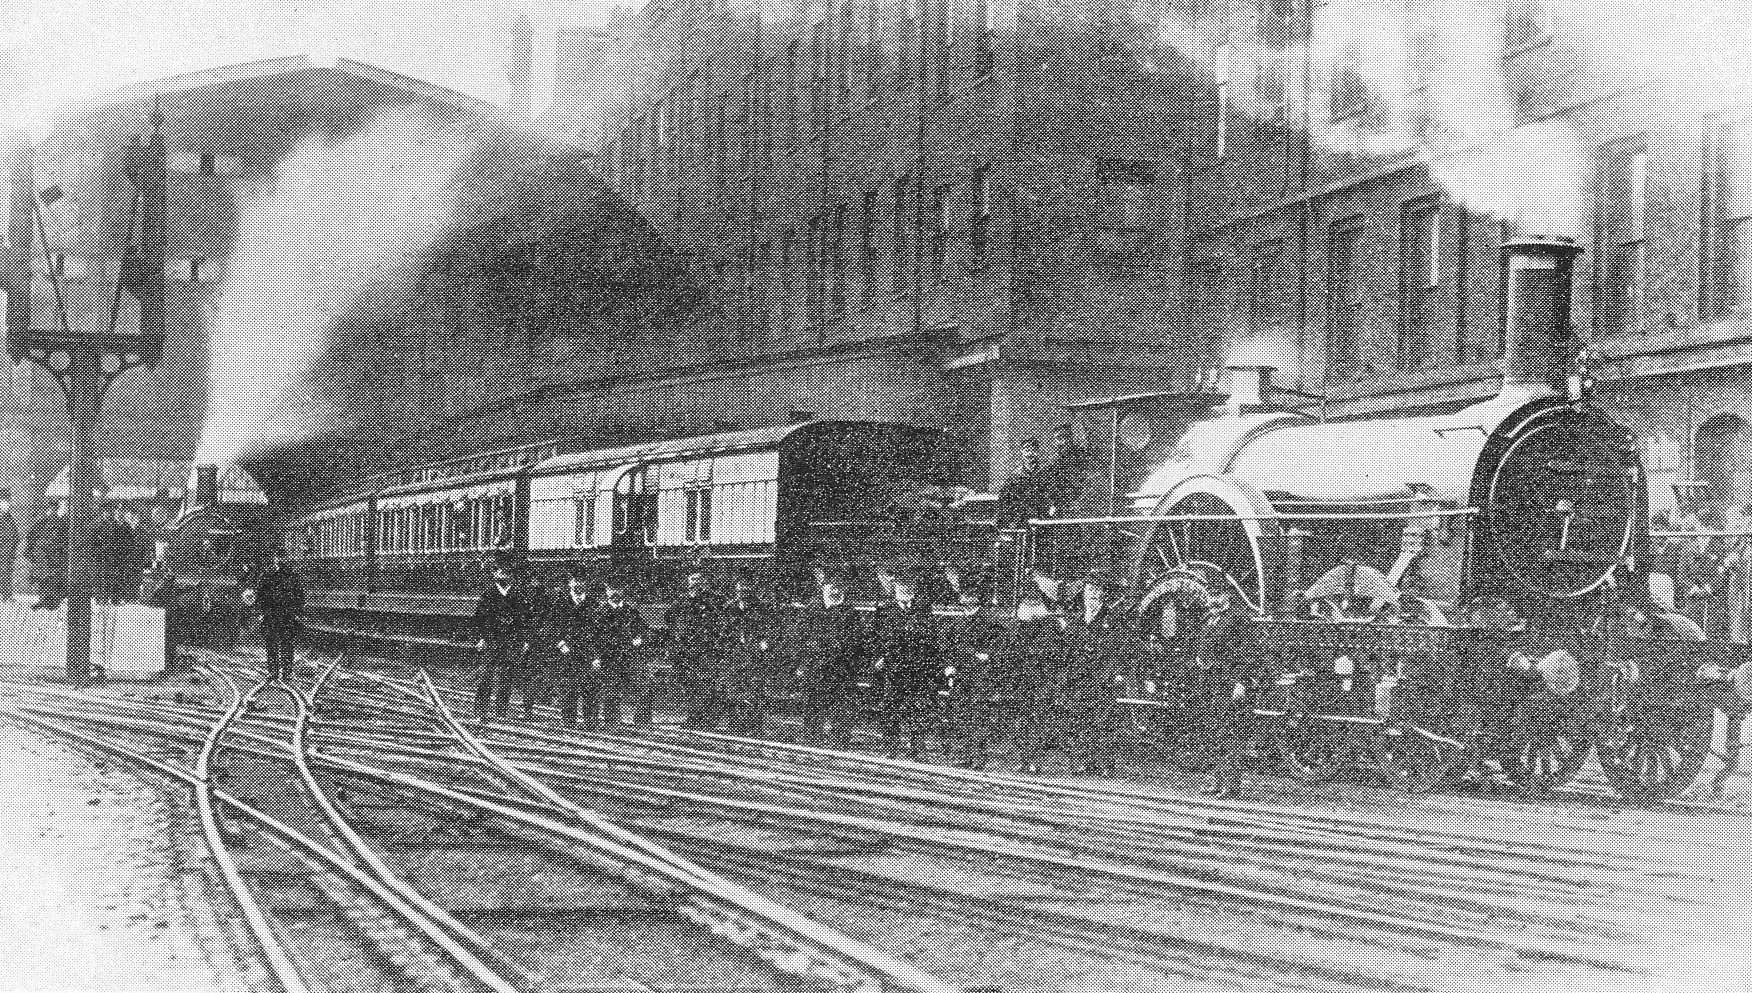 Black and white photograph of steam train outside a large station with many tracks visible and a building of multiple stories behind it. There are at least 12 men stood infront of the train, and two men in the cab of the engine.